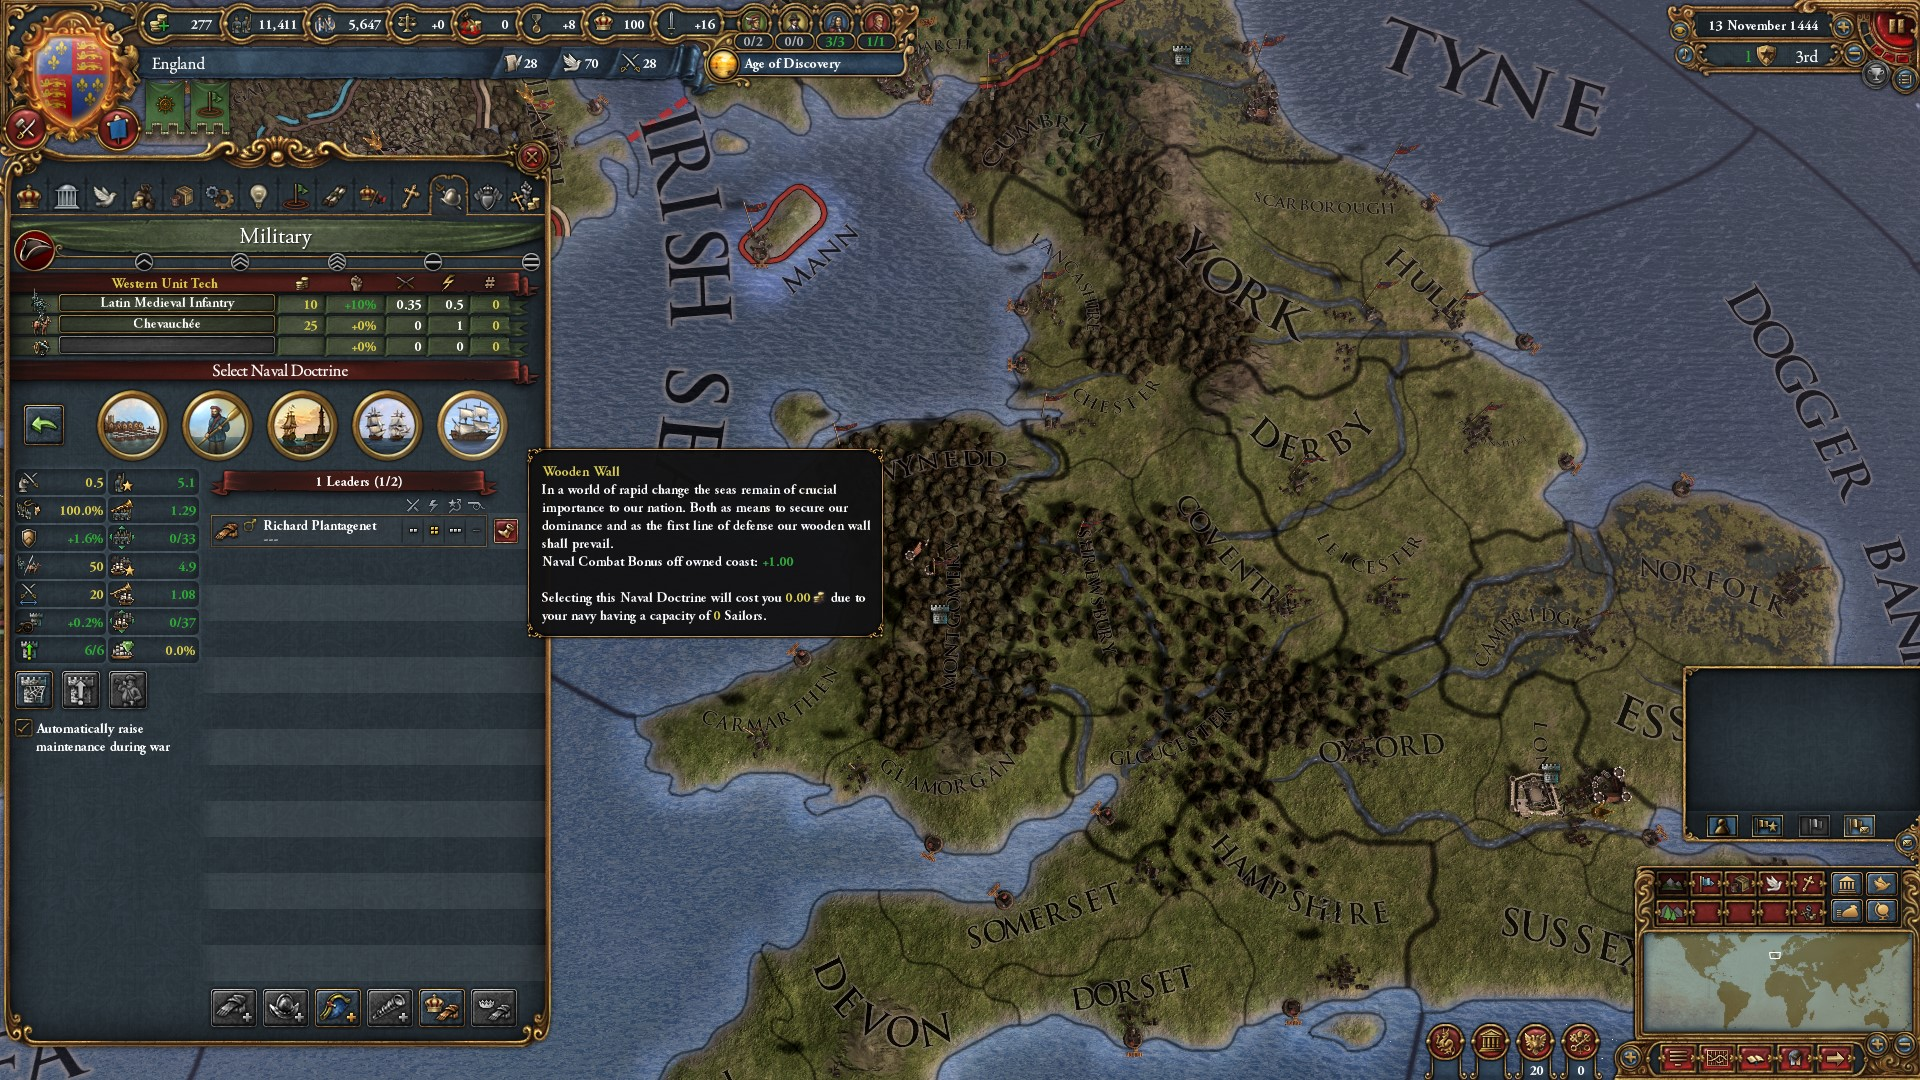 Europa Universalis IV Rule Britannia (Steam key) -- RU